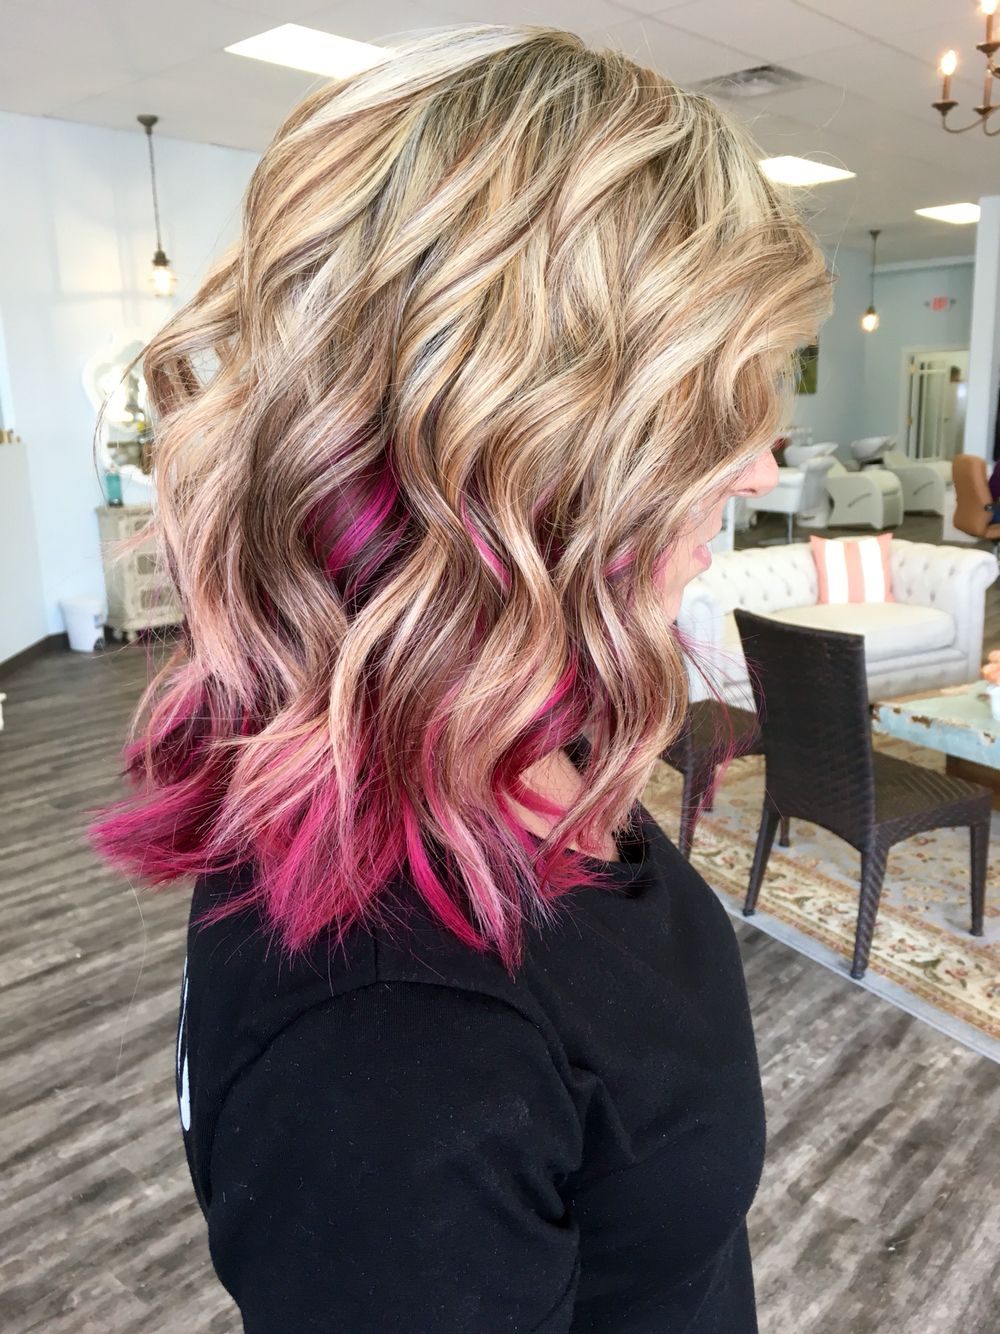 Blonde With Magenta Done By Allydestout Pink Blonde Hair Magenta Hair Pink Hair Highlights